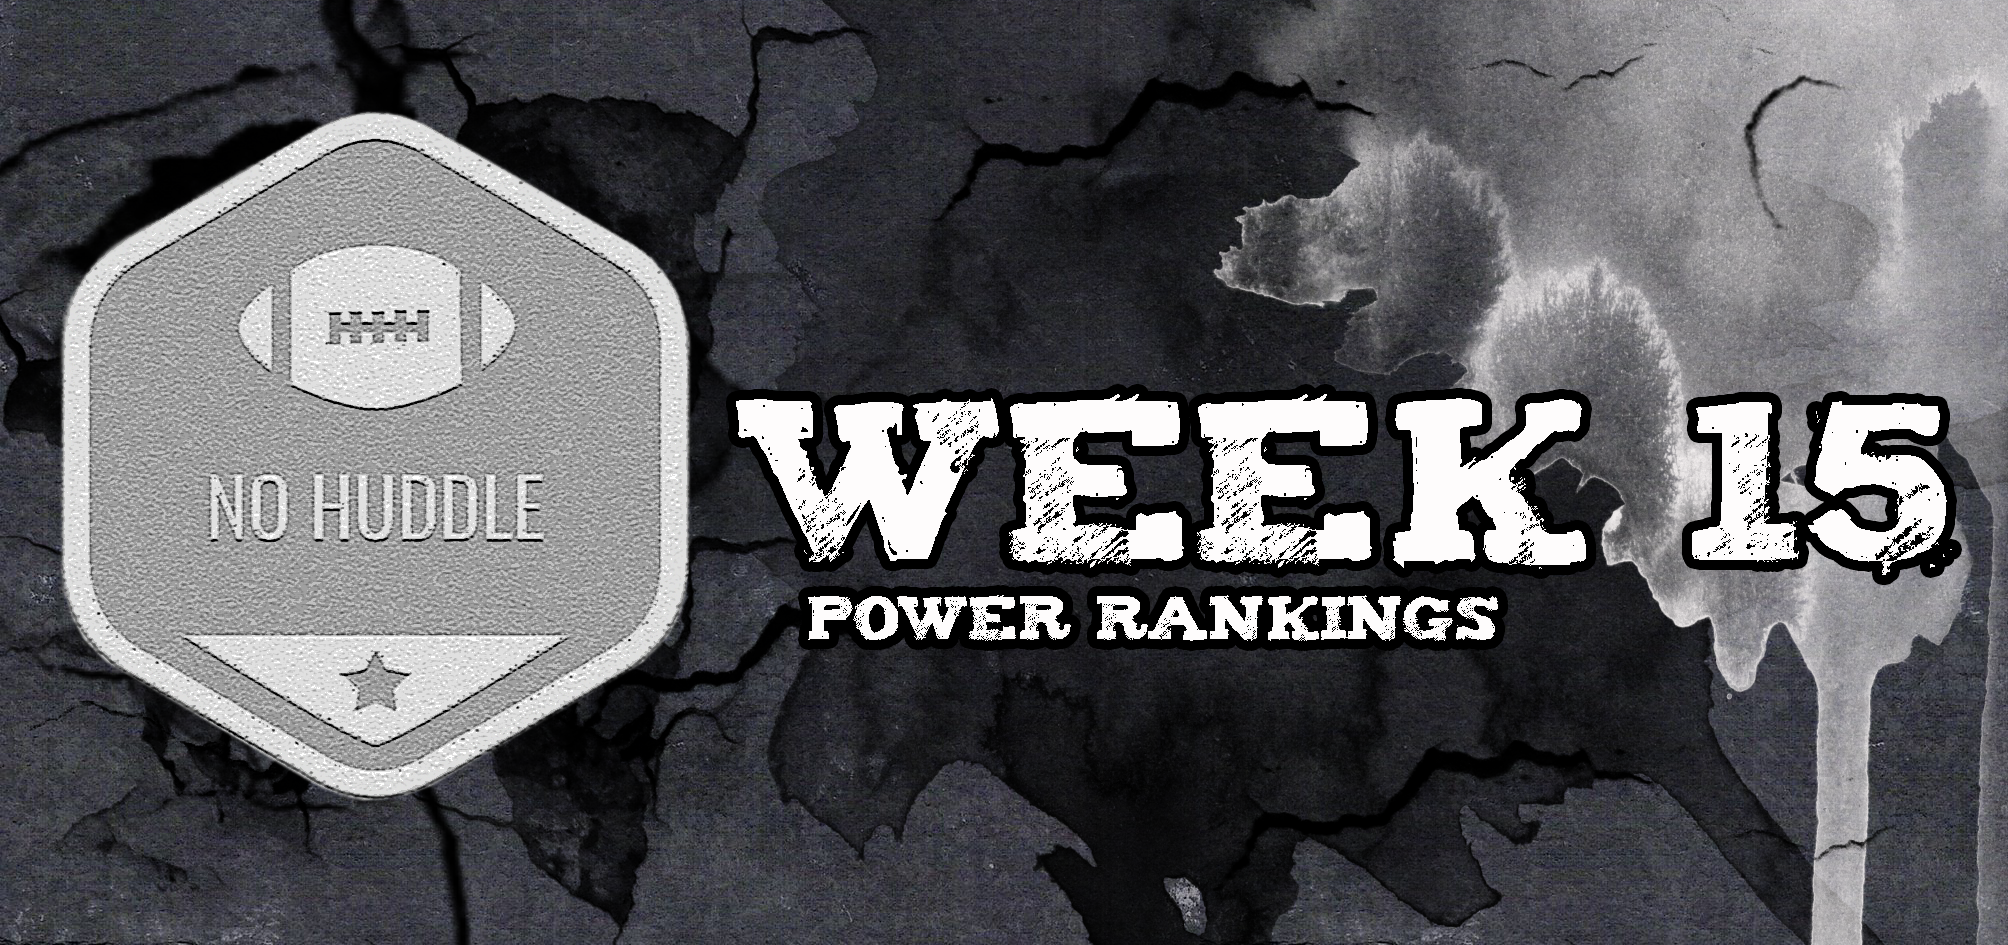 Power Rankings: Semana 15